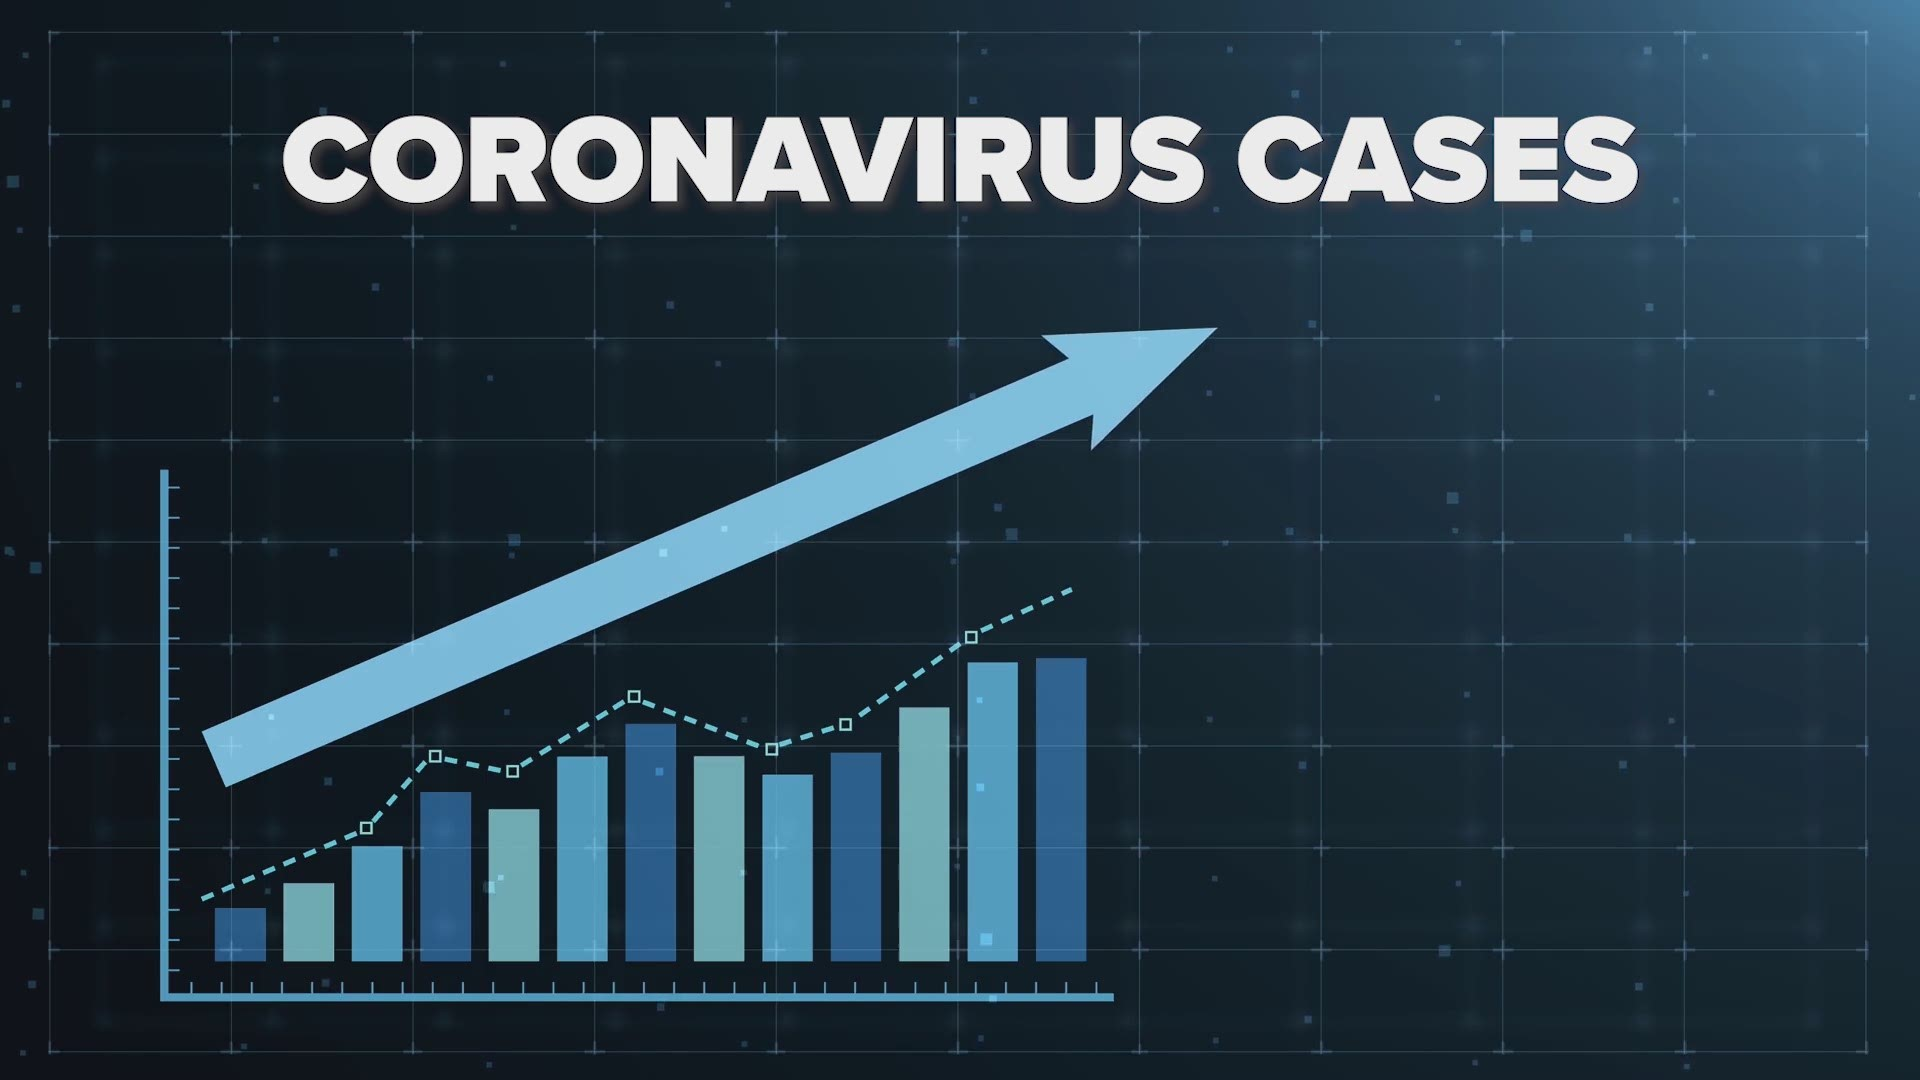 Coronavirus In Ohio Up To Date Case Numbers Trends As Of Sept 1 King5 Com